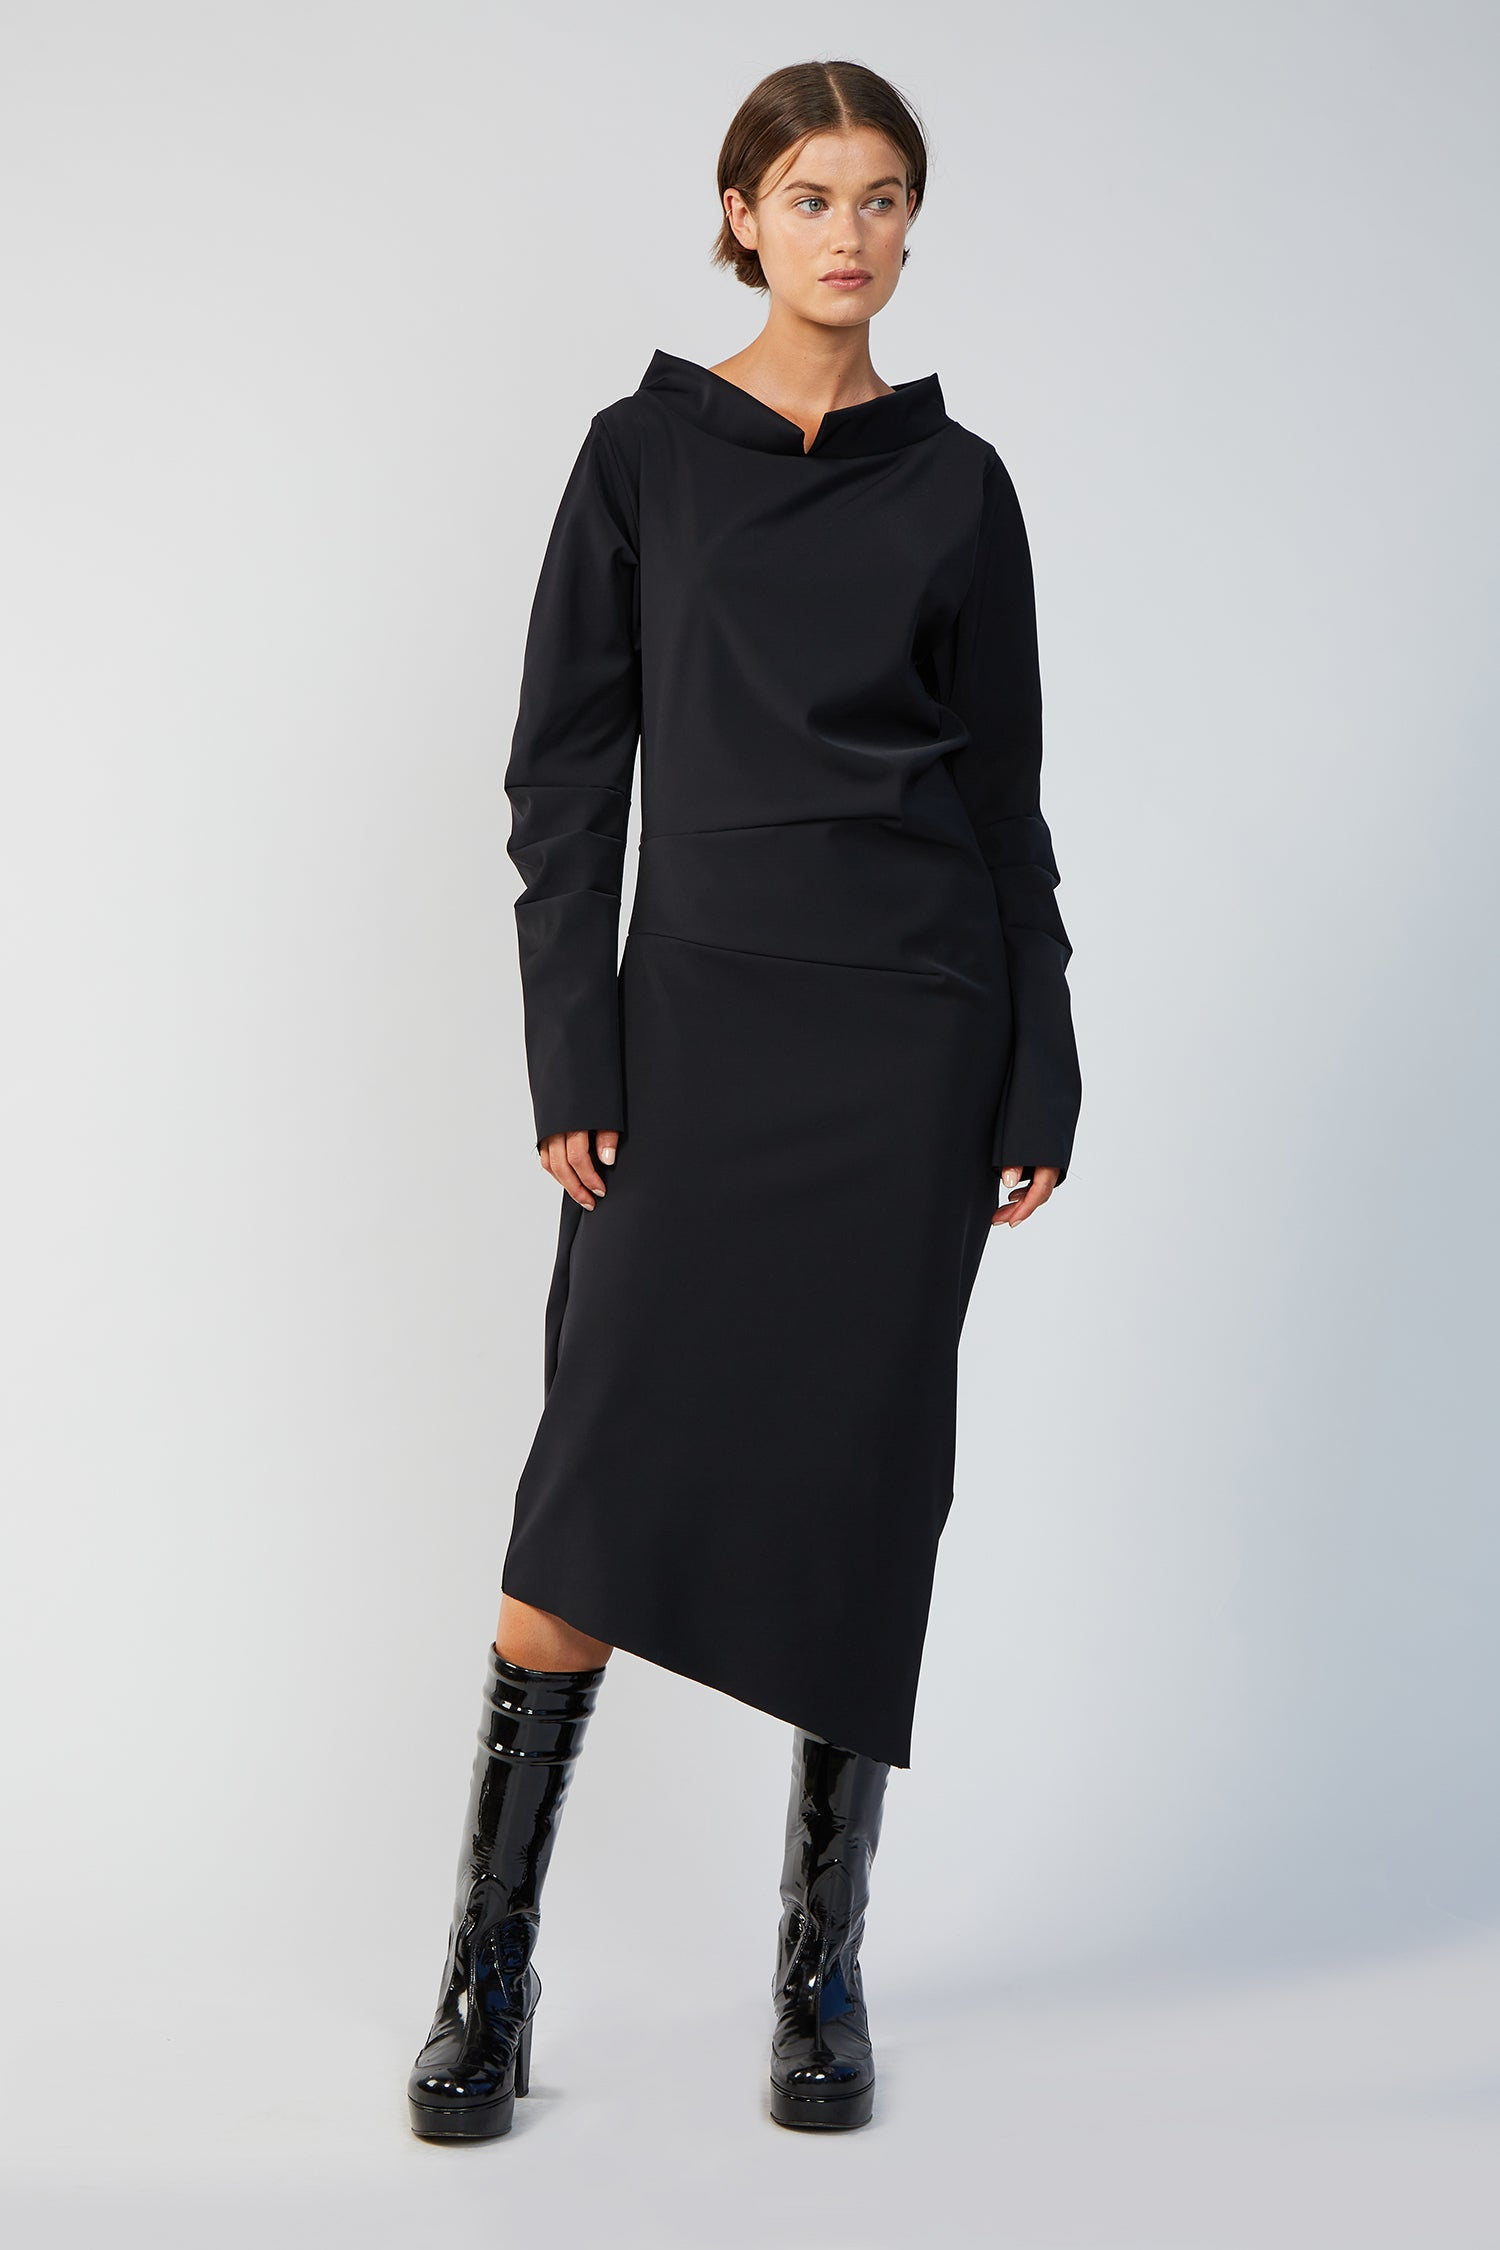 Zambesi W21 New Arrival: Skewed